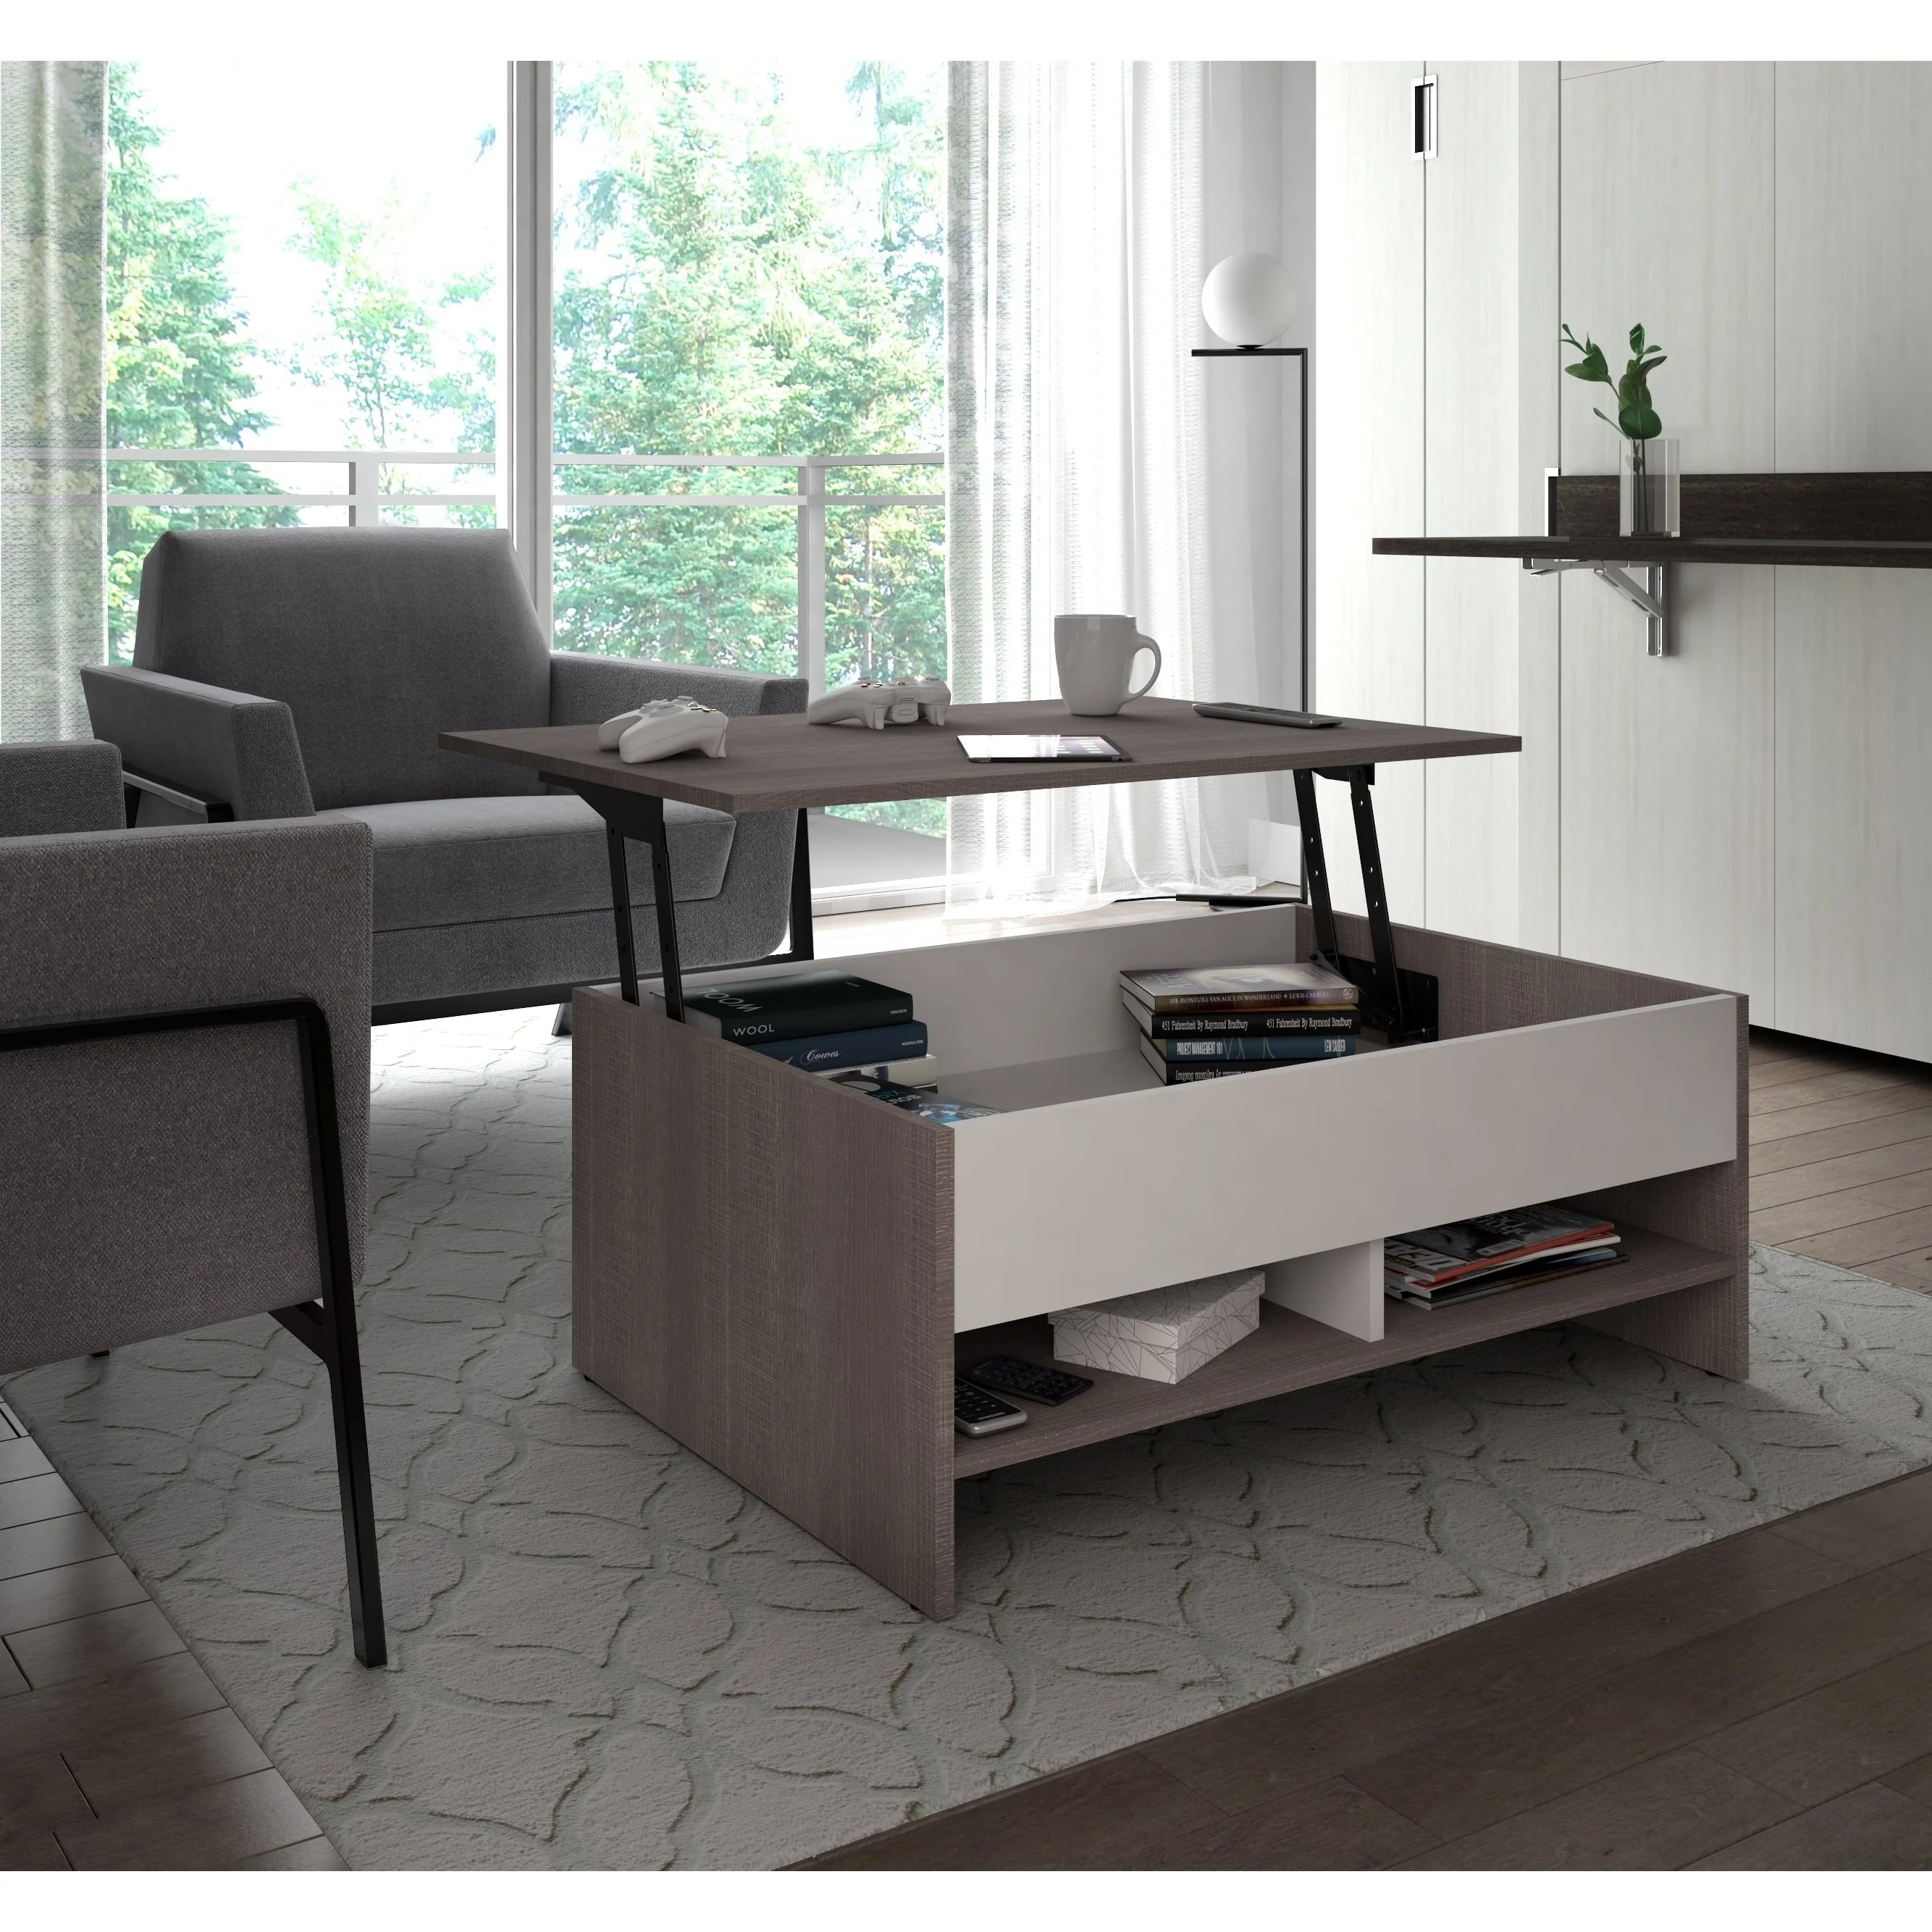 Shop Bestar Small Space 37 Inch Lift Top Storage Coffee Table On Sale Overstock 15210010 Bark Grey White